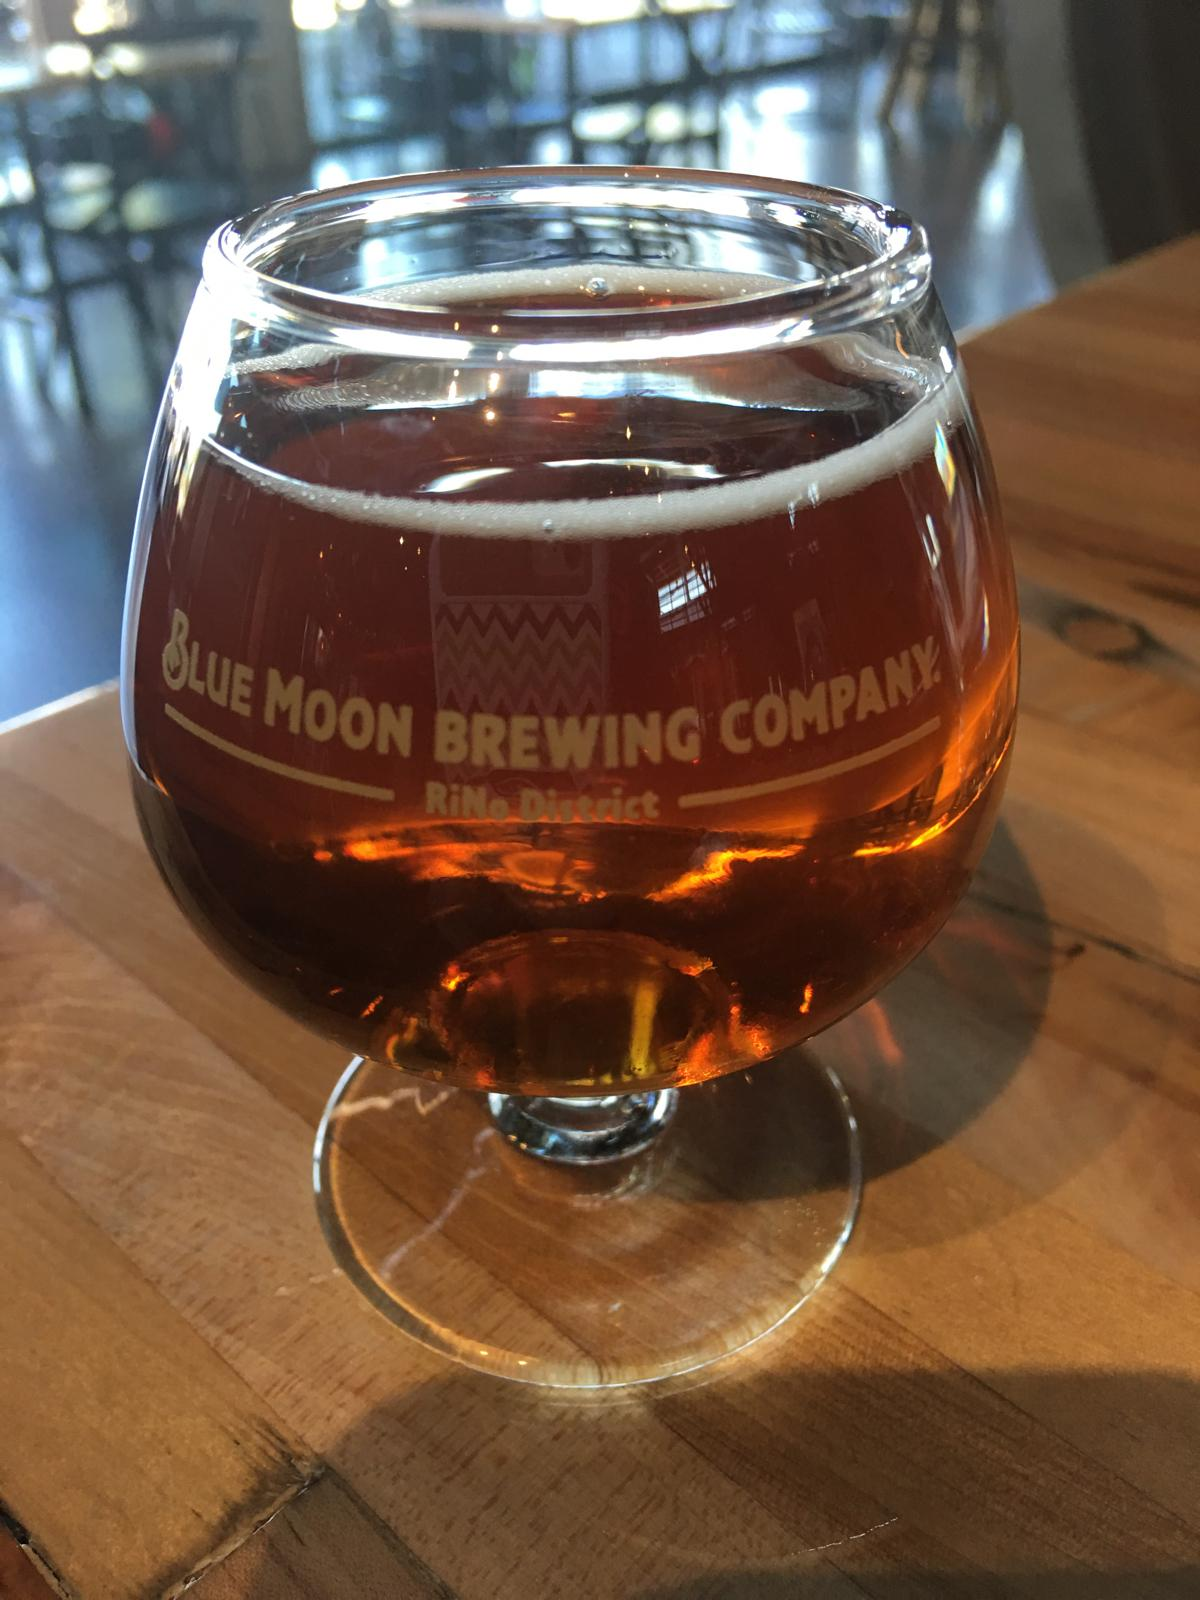 Blue Moon Barrel Aged Rum Maple Pumpkin